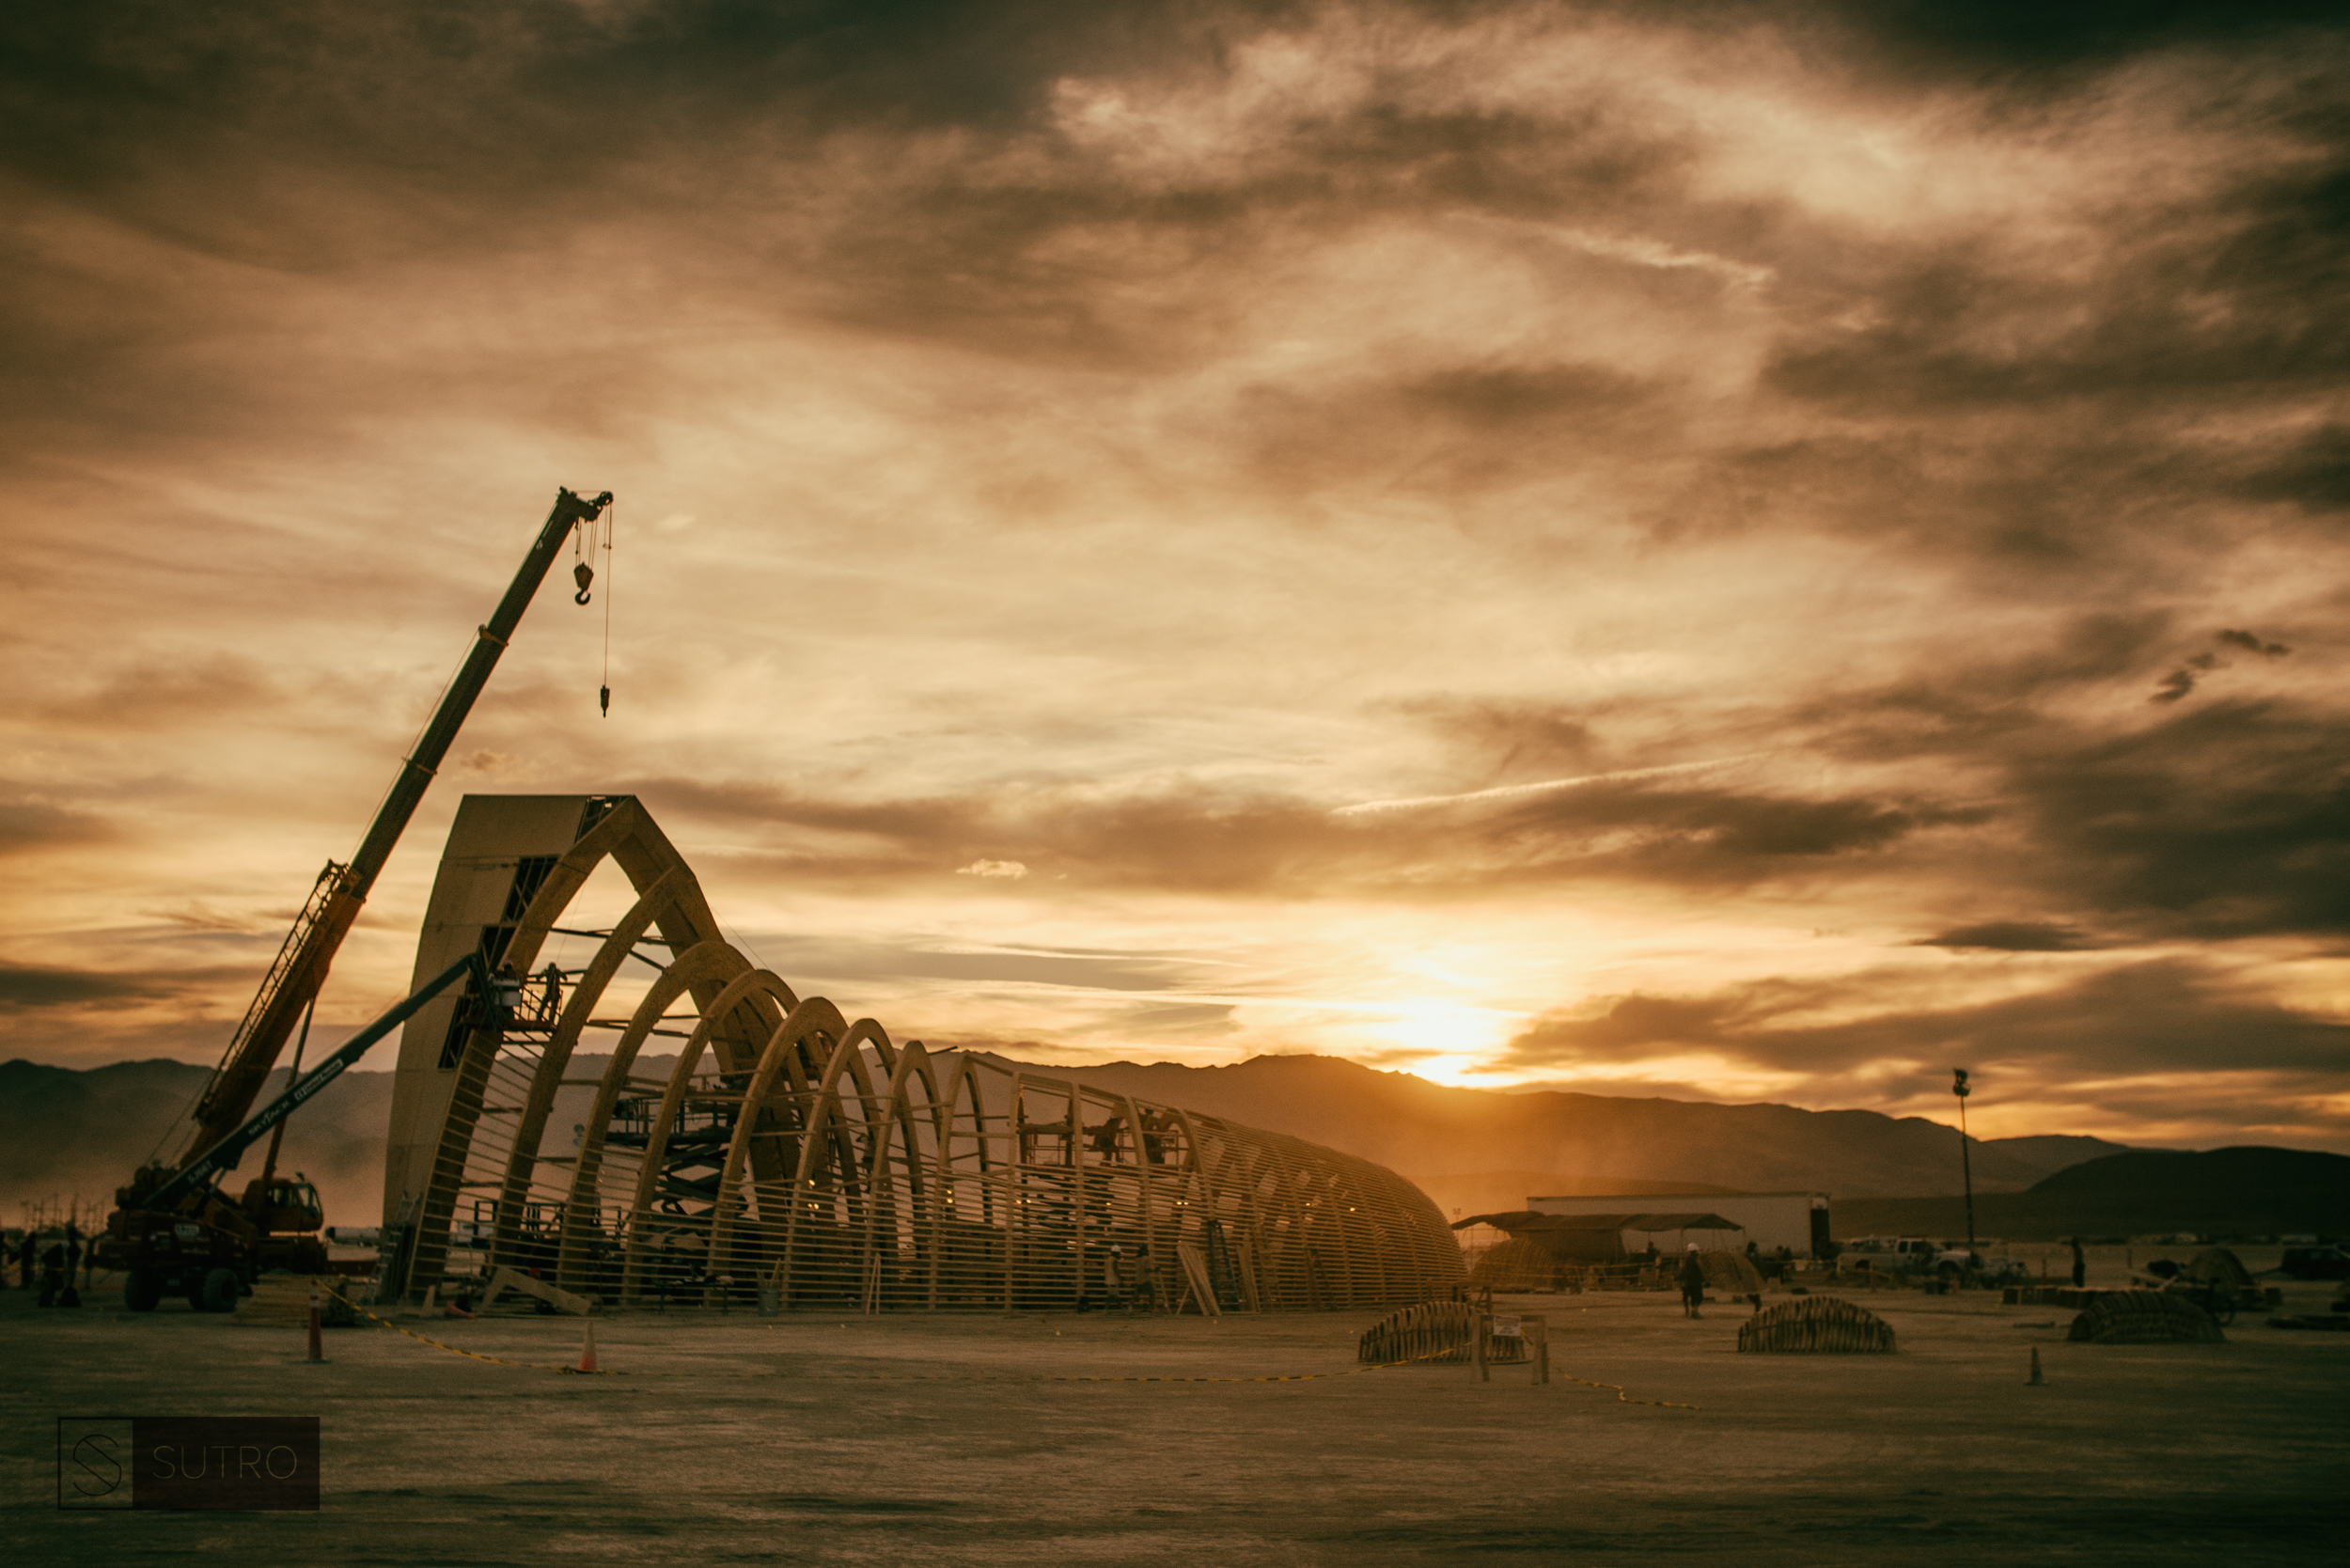 One of the many stunning sunsets on the Playa, several days before the event officially opens to the public. The Temple crew already working around the clock to make sure everything ran on time and smoothly.